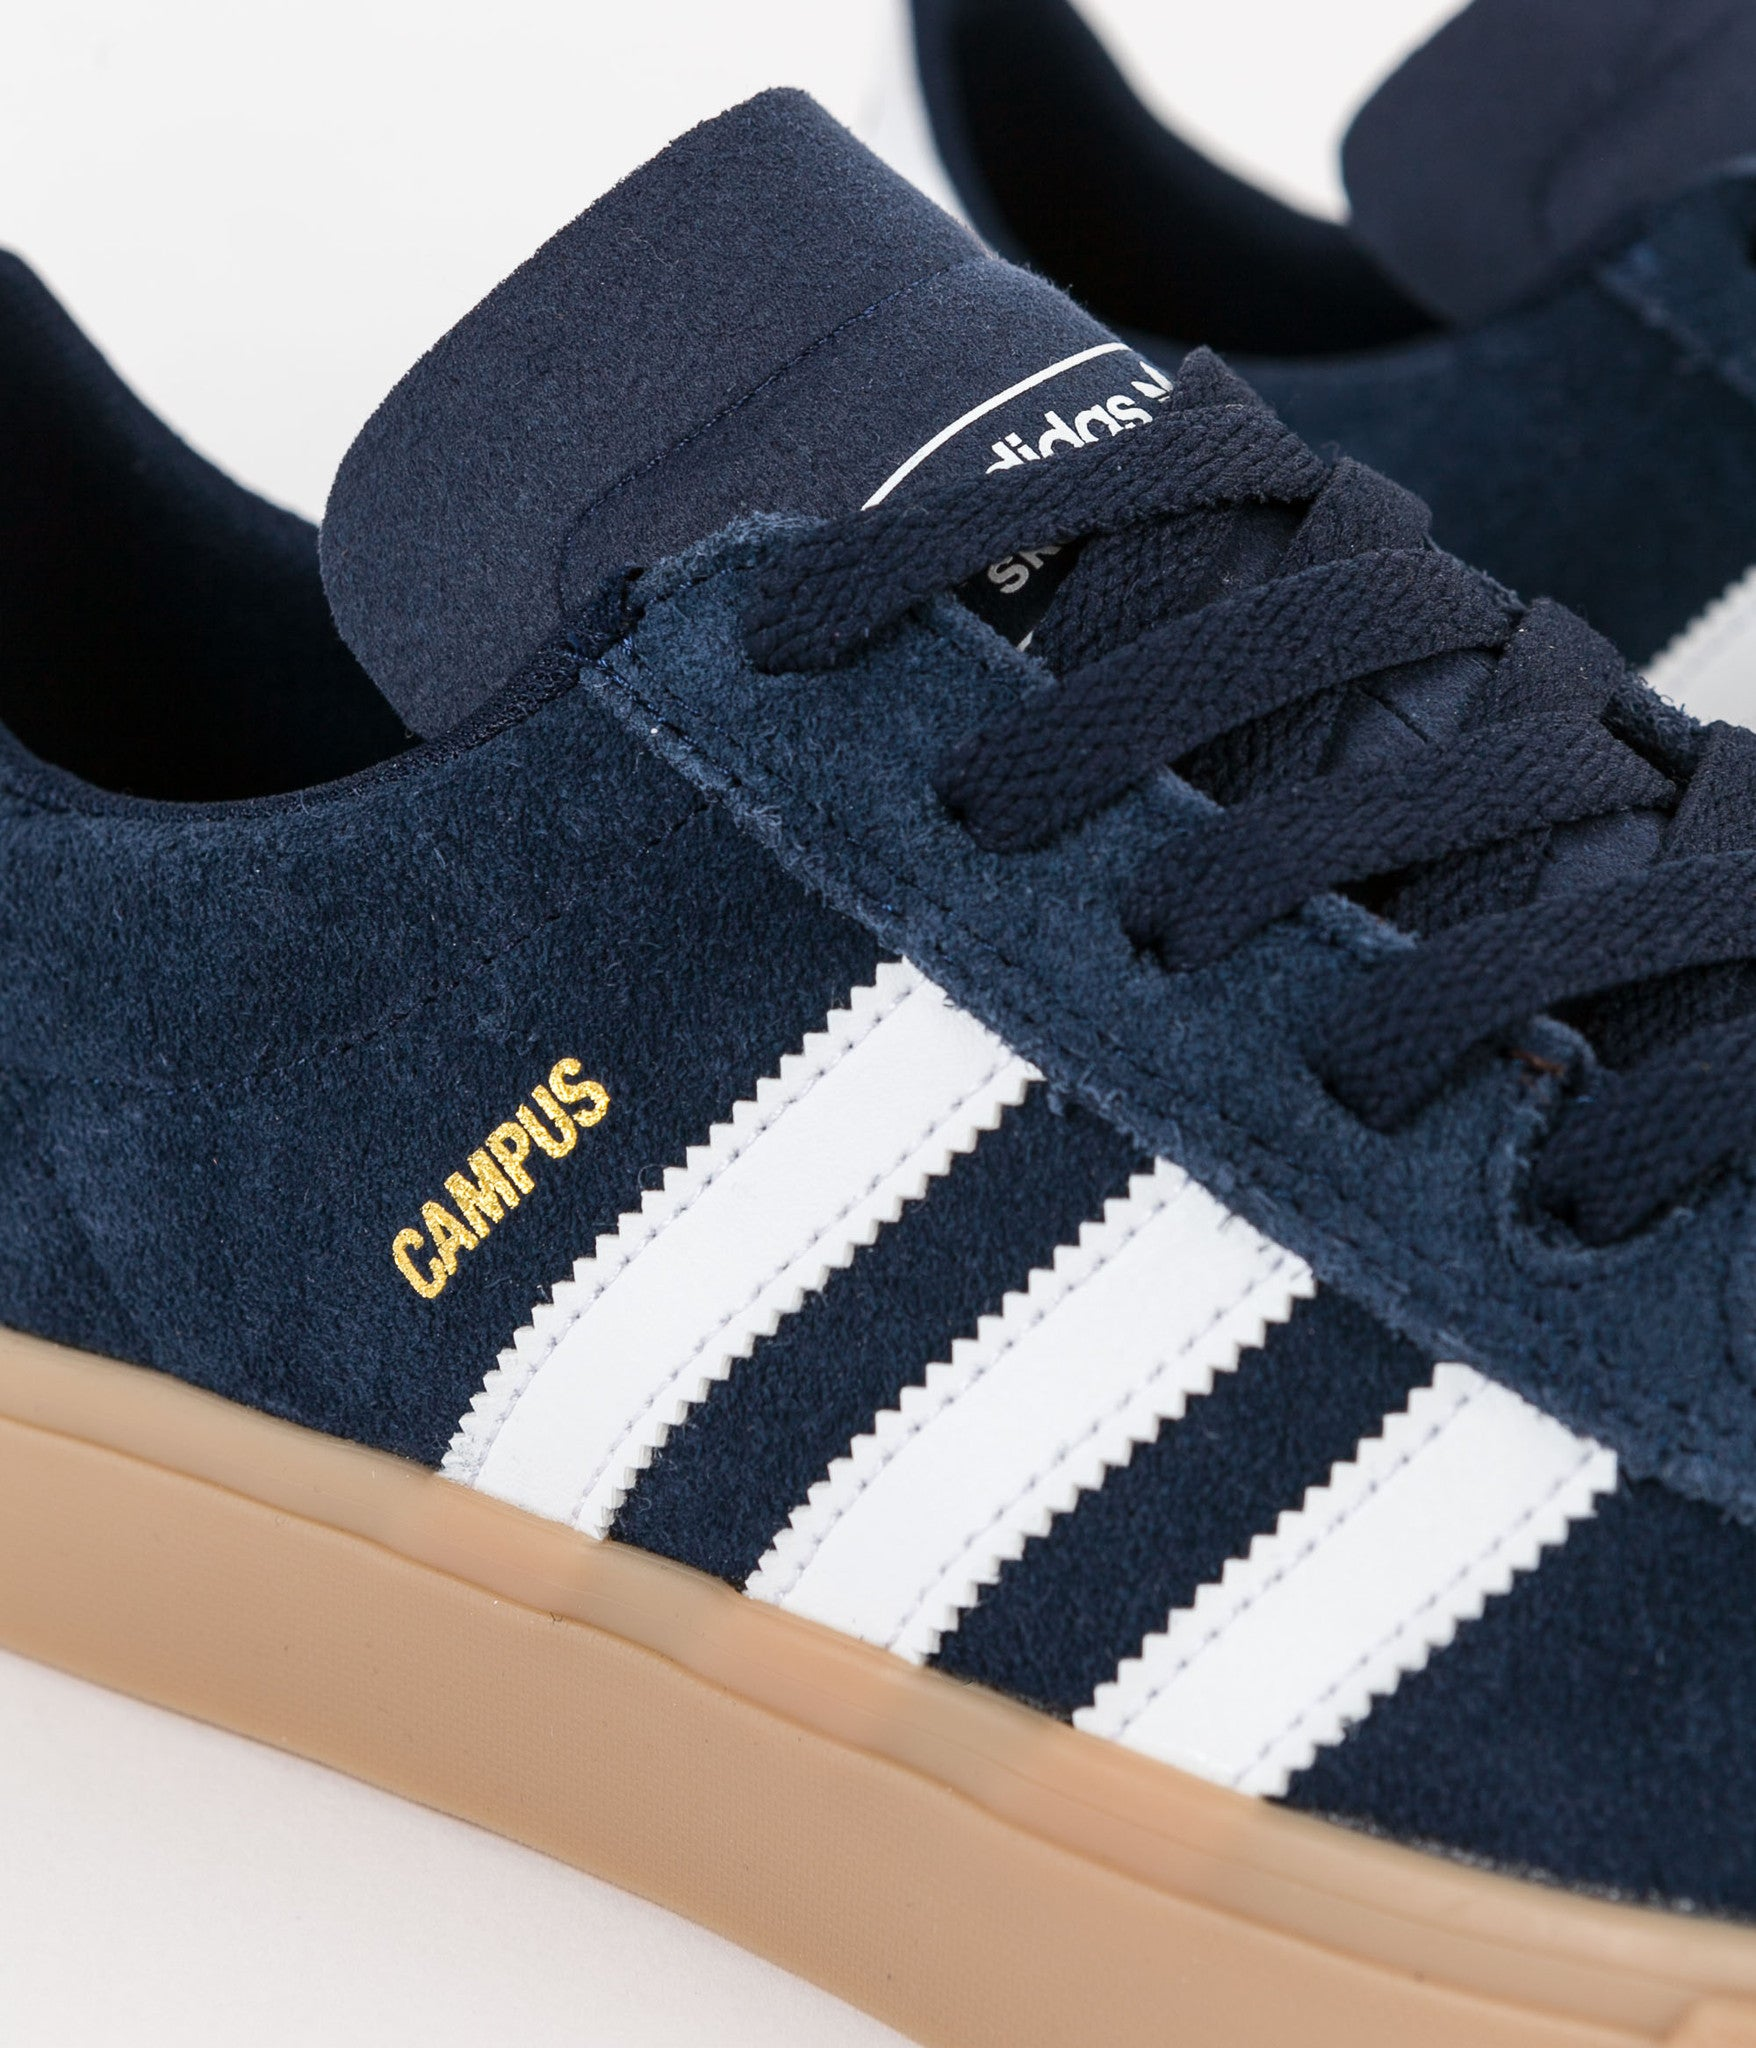 Adidas Campus Vulc II Adv Shoes - Collegiate Navy / White / Gum4